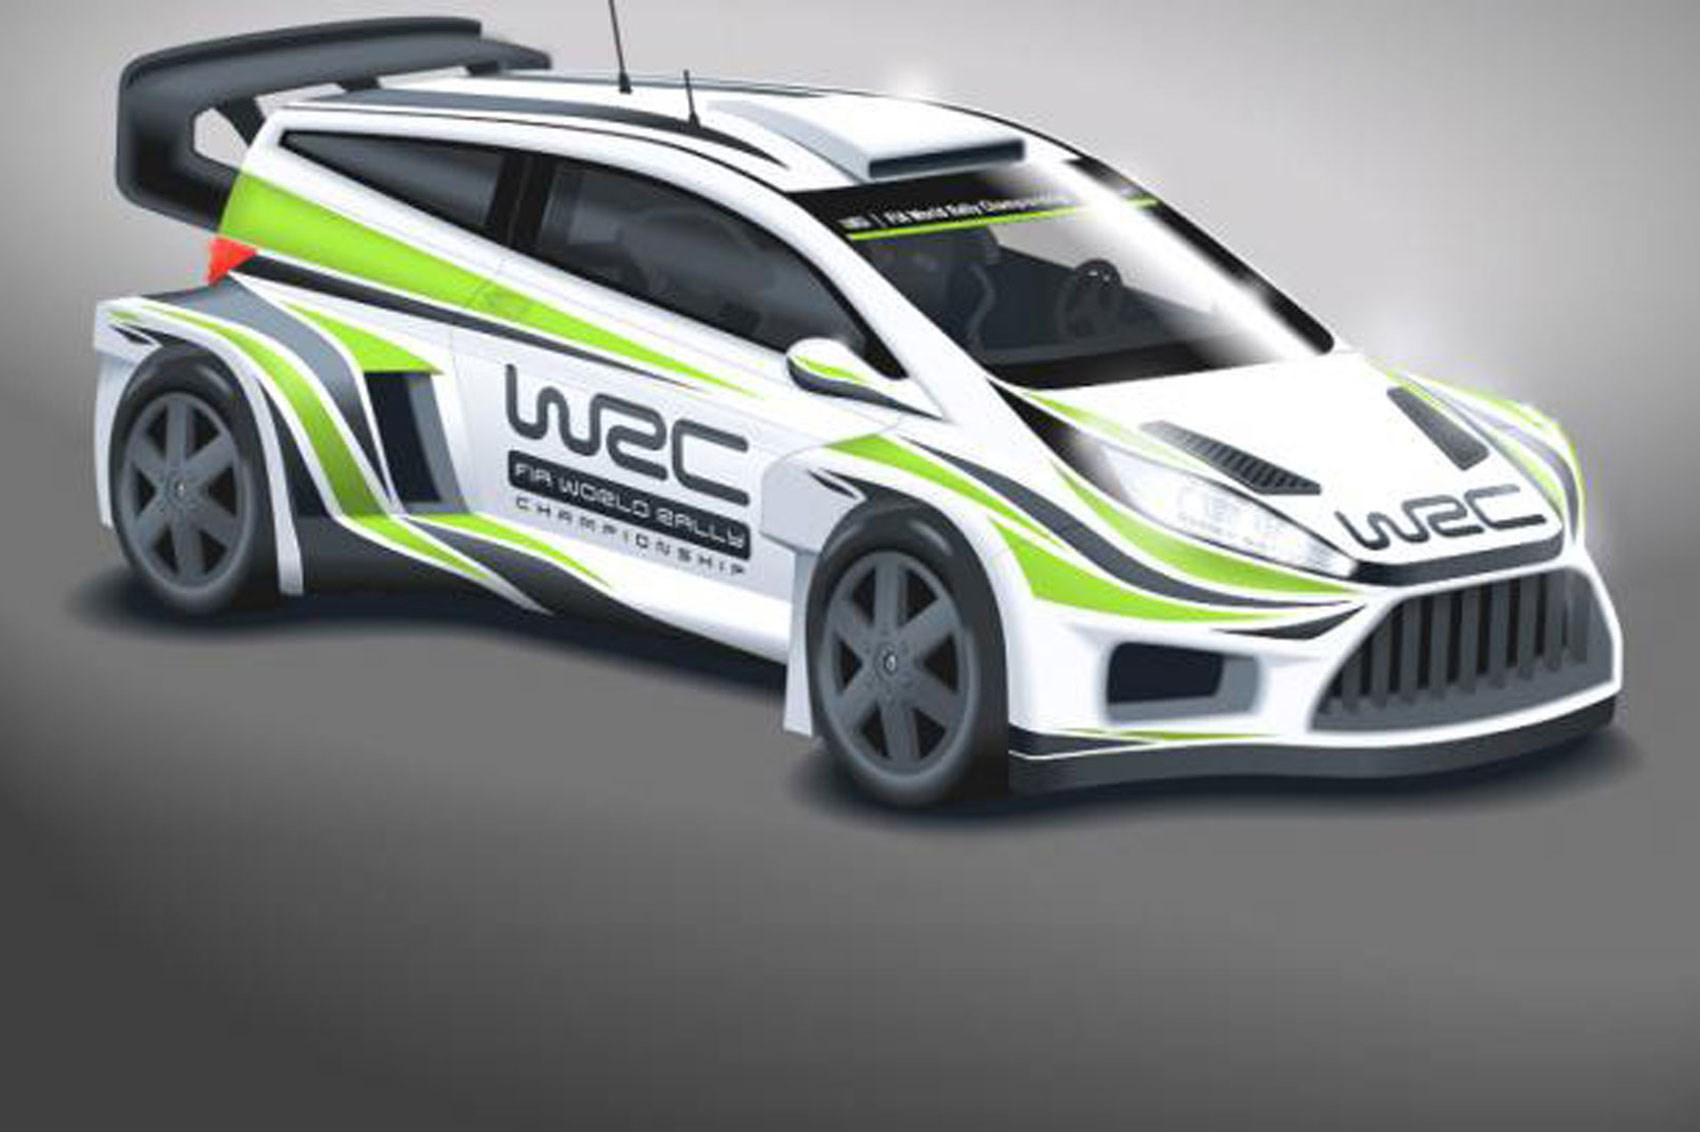 Ultrablogus  Ravishing Wild New Look For Wrc Cars In  By Car Magazine With Remarkable Wrc Cars Will Get Wider Bodies Bigger Wings And More Power For  With Cool Neon Srt  Interior Also Maxima Interior In Addition  Bmw Il Interior And  Bmw I Interior As Well As  Jeep Wrangler Interior Additionally  Jeep Wrangler Interior From Carmagazinecouk With Ultrablogus  Remarkable Wild New Look For Wrc Cars In  By Car Magazine With Cool Wrc Cars Will Get Wider Bodies Bigger Wings And More Power For  And Ravishing Neon Srt  Interior Also Maxima Interior In Addition  Bmw Il Interior From Carmagazinecouk